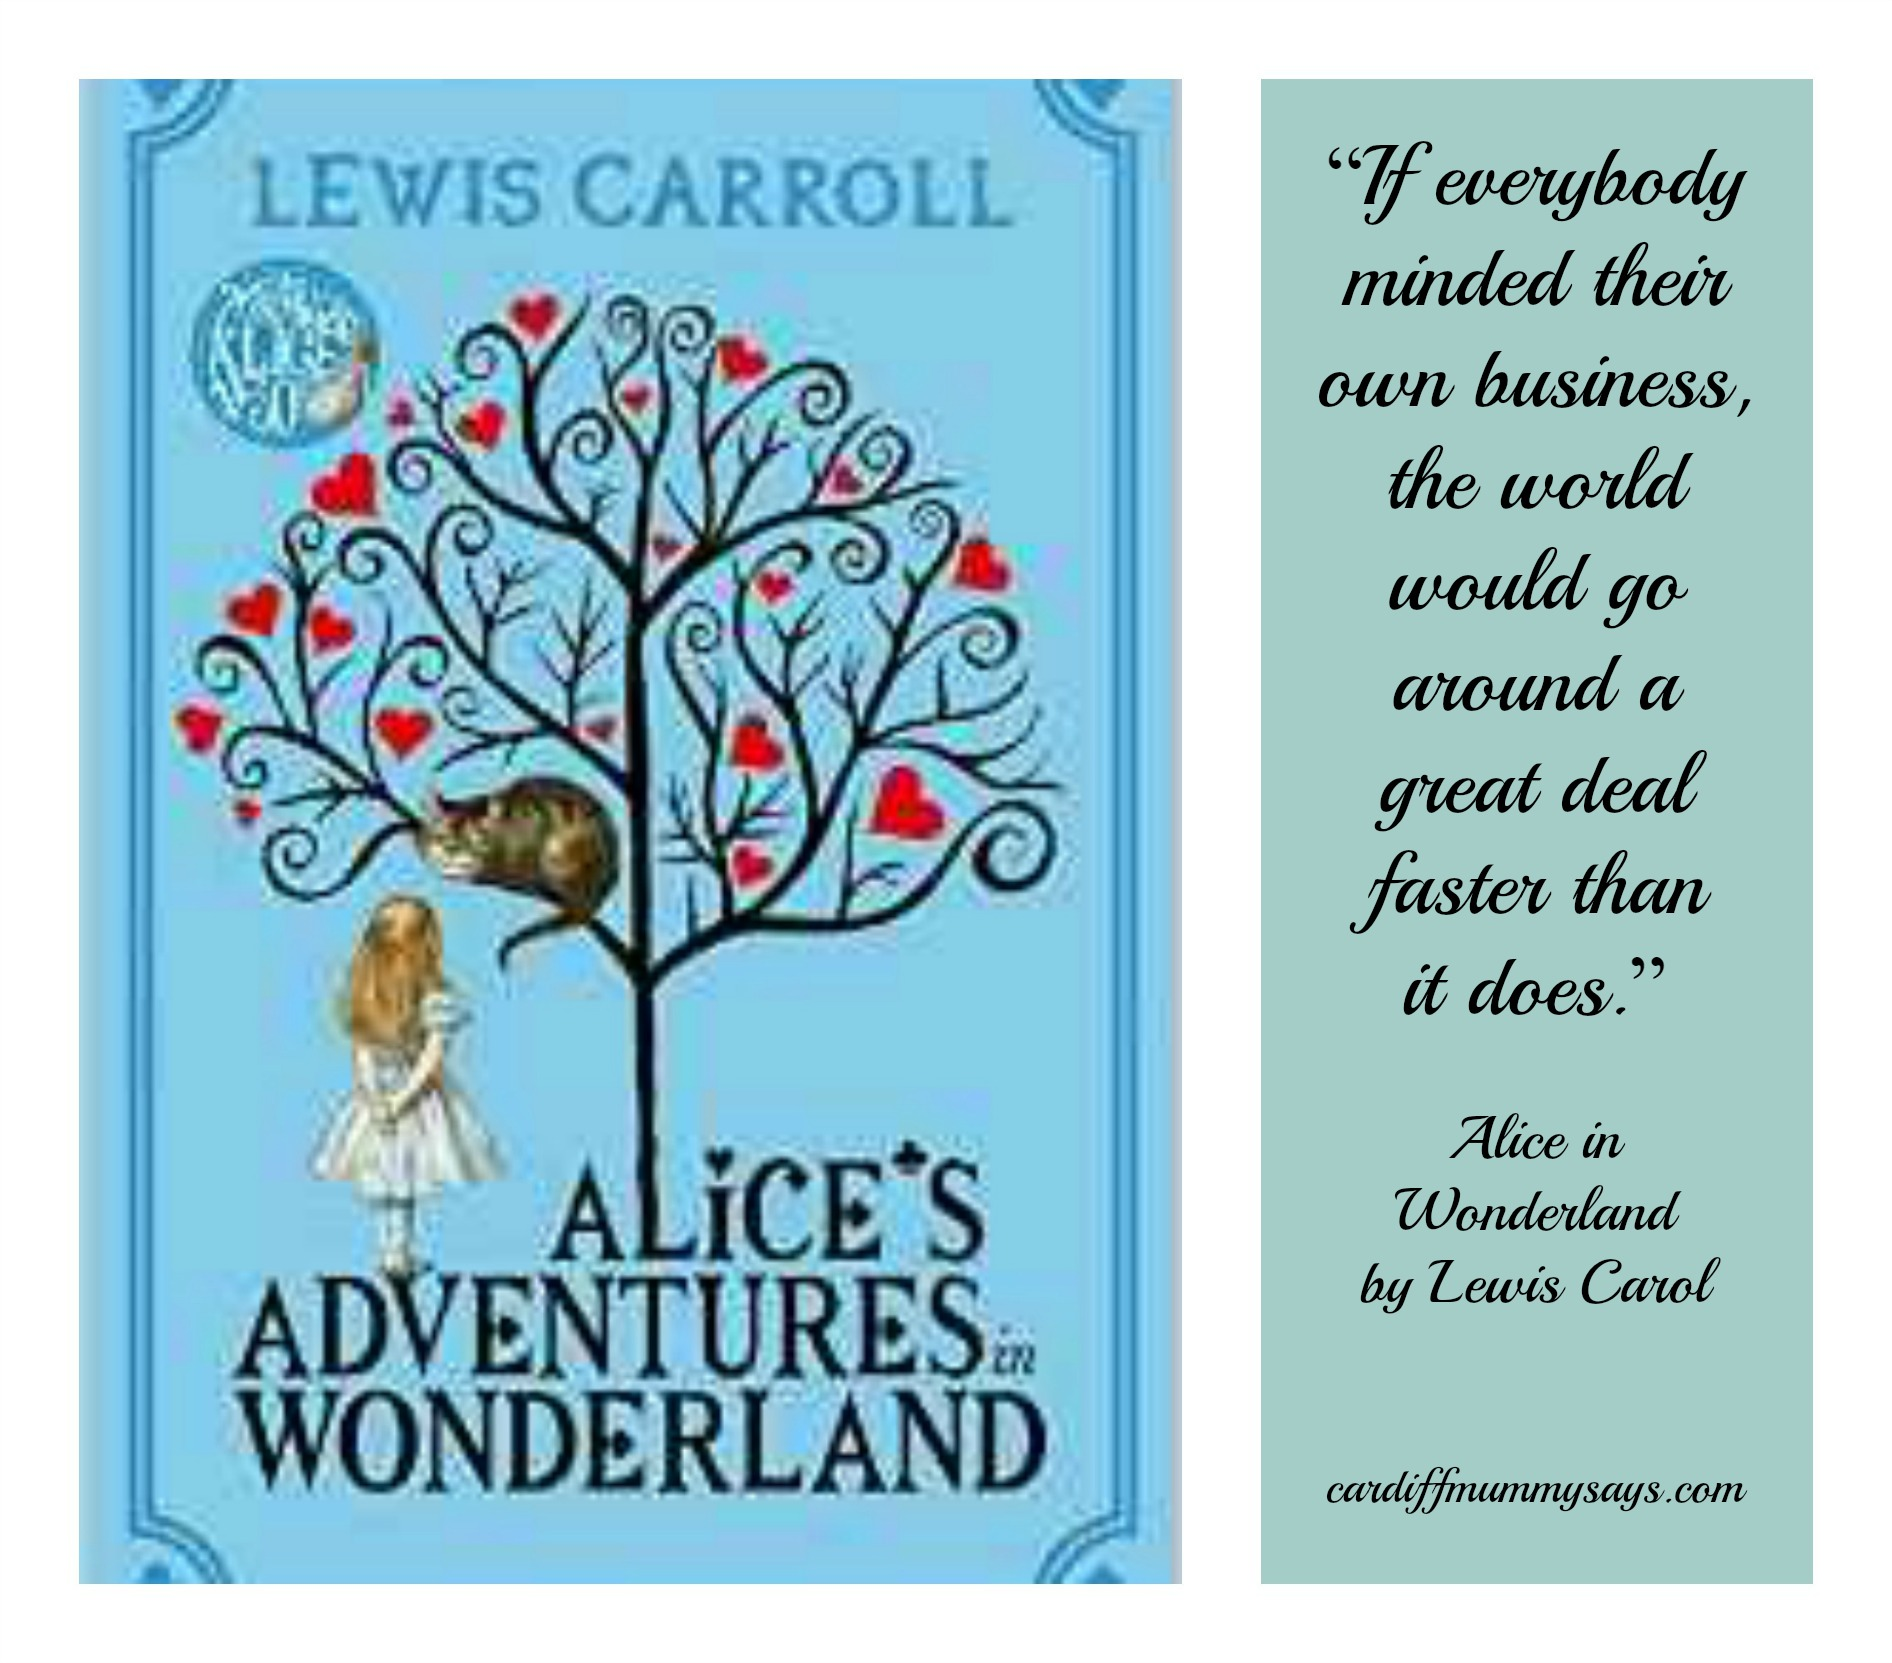 Alice In Wonderland Book Quotes: 16 Inspiring Quotes From Children's Books In Celebration